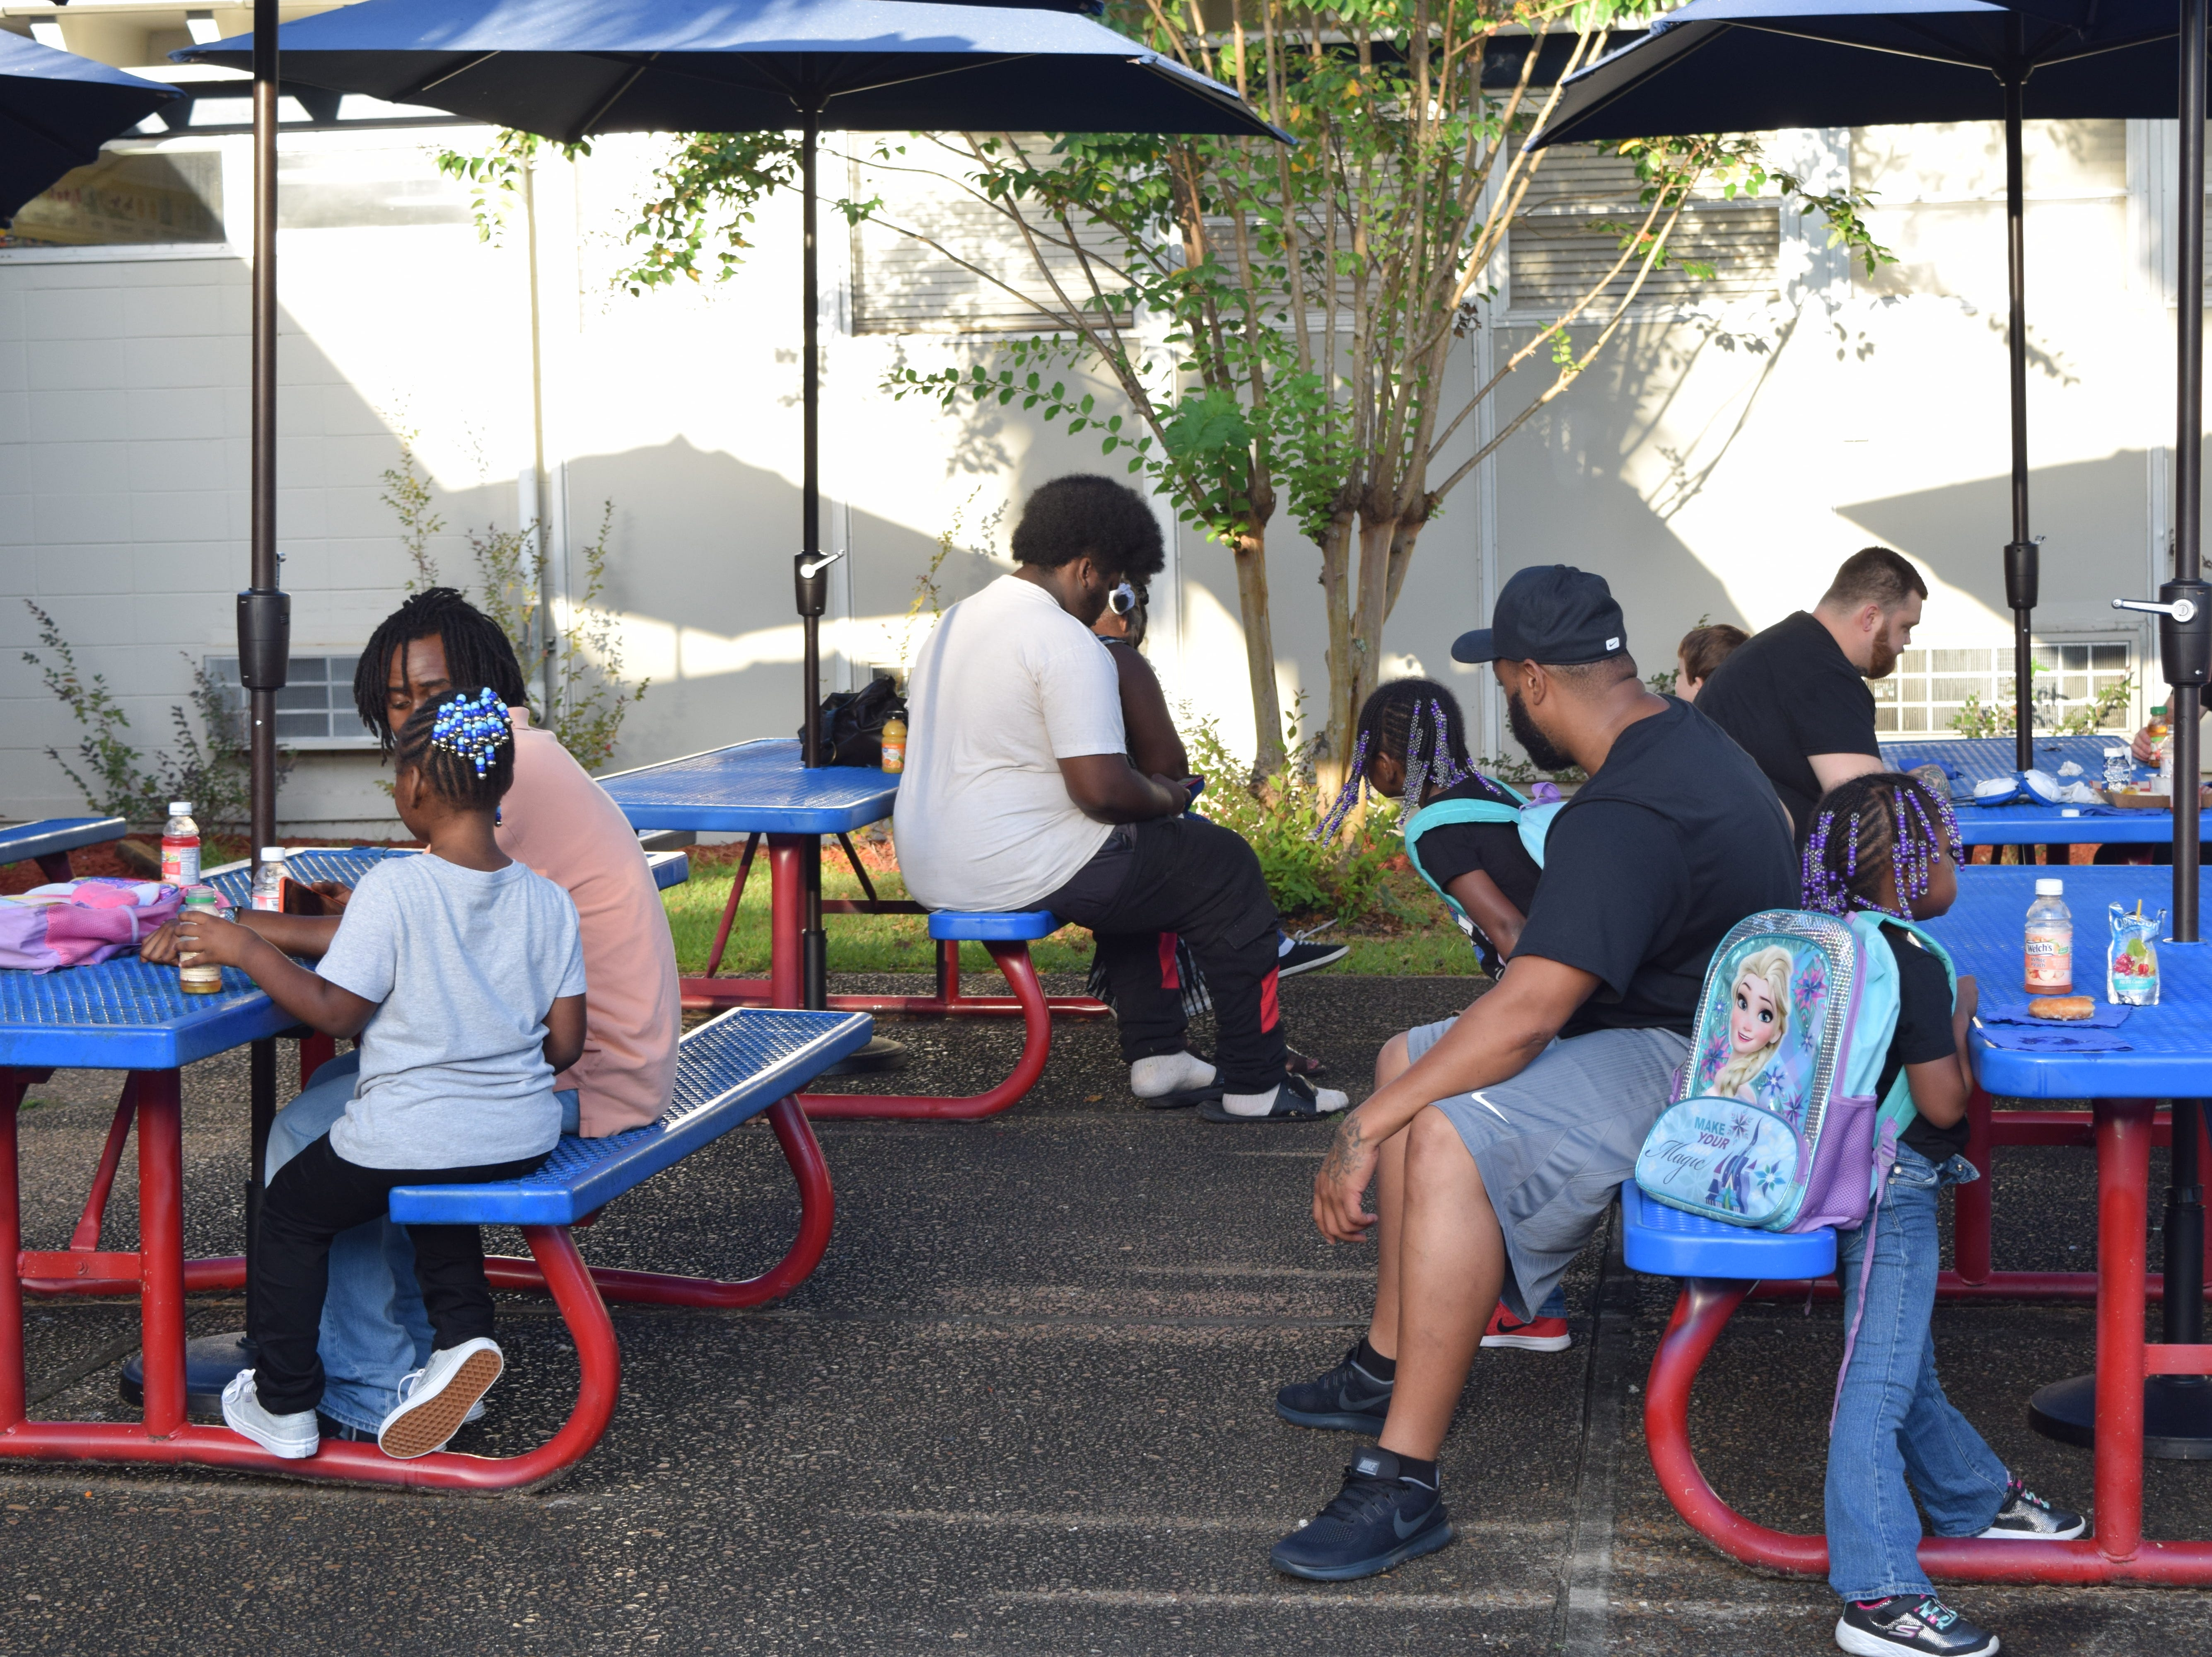 Dads sit with the children before school, eat doughnuts and drink juice for the doughnuts for dads event at Sabal Palm Elementary School.